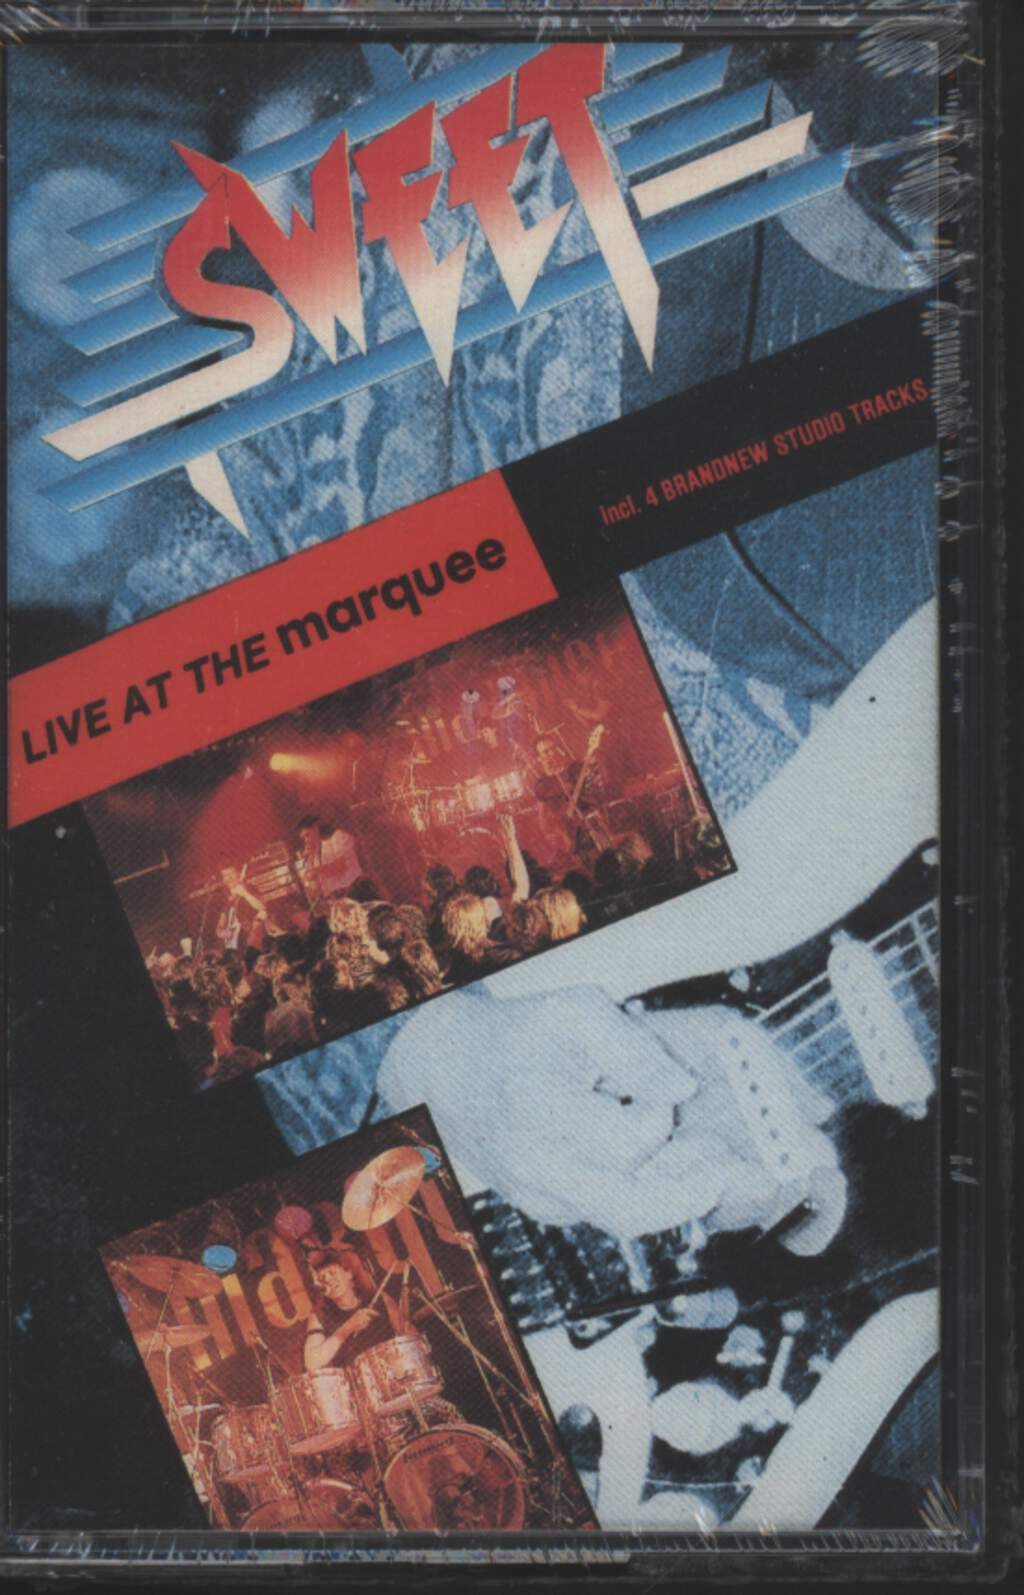 The Sweet: Live At The Marquee, Tape